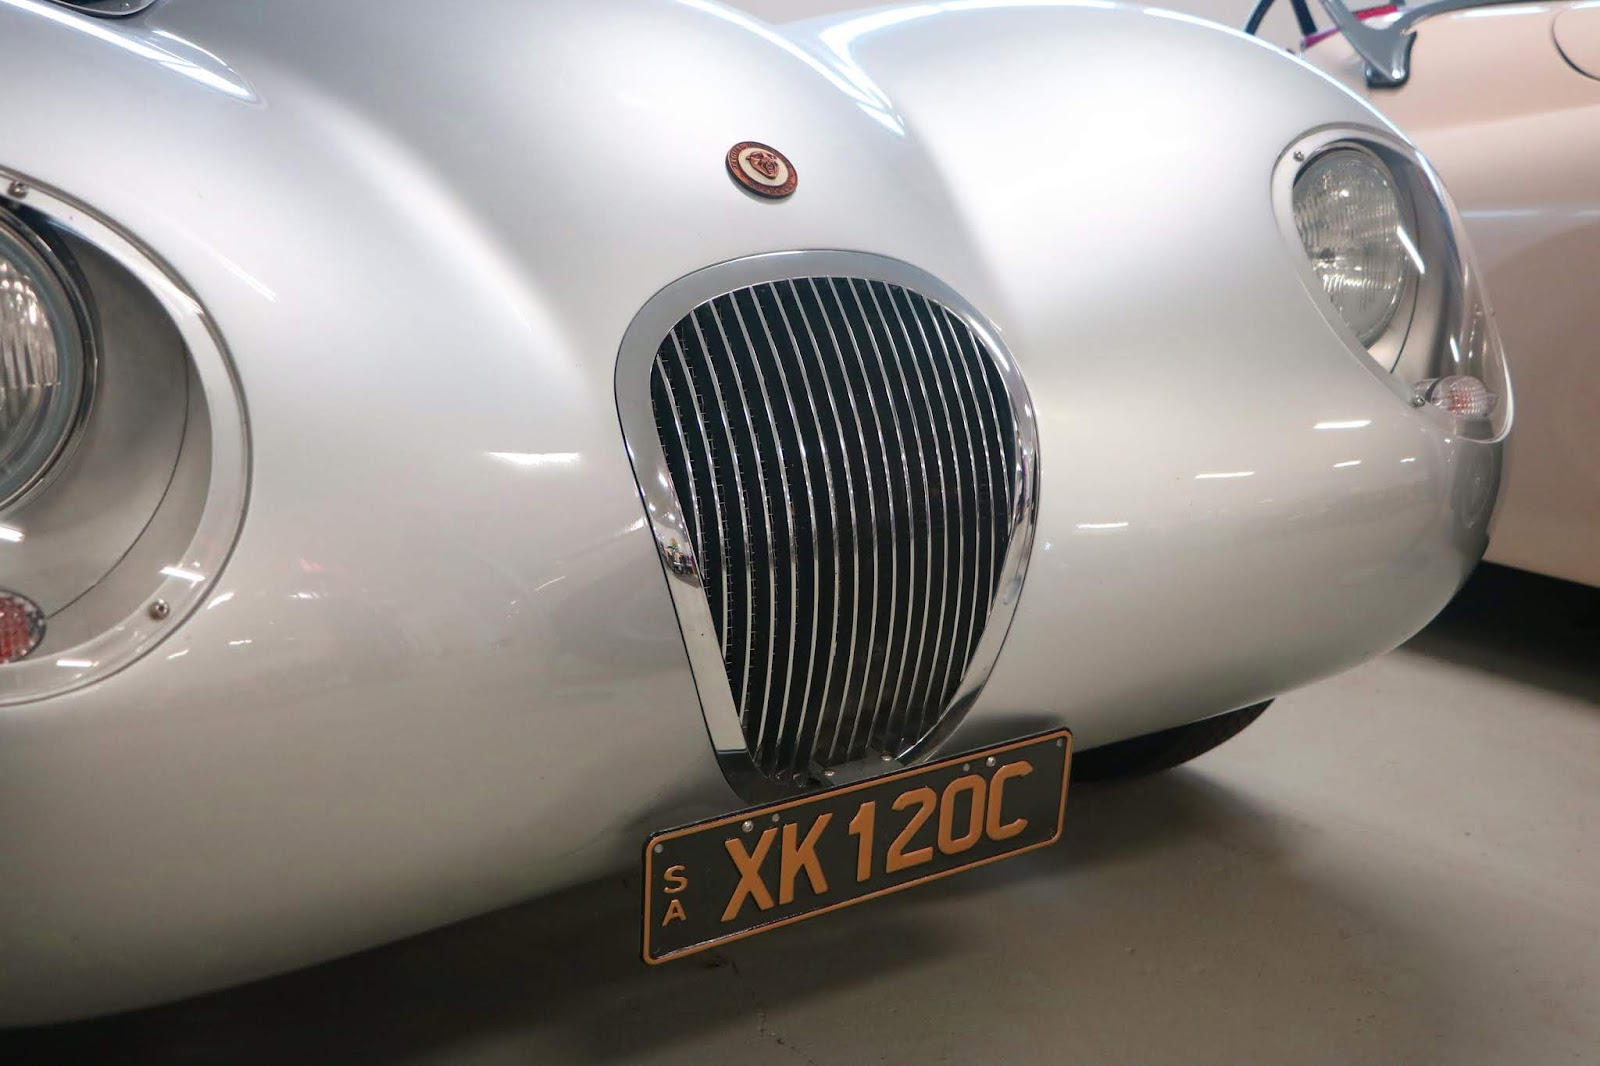 Carl_Lindner_Collection - XK120C Replica 10.JPG